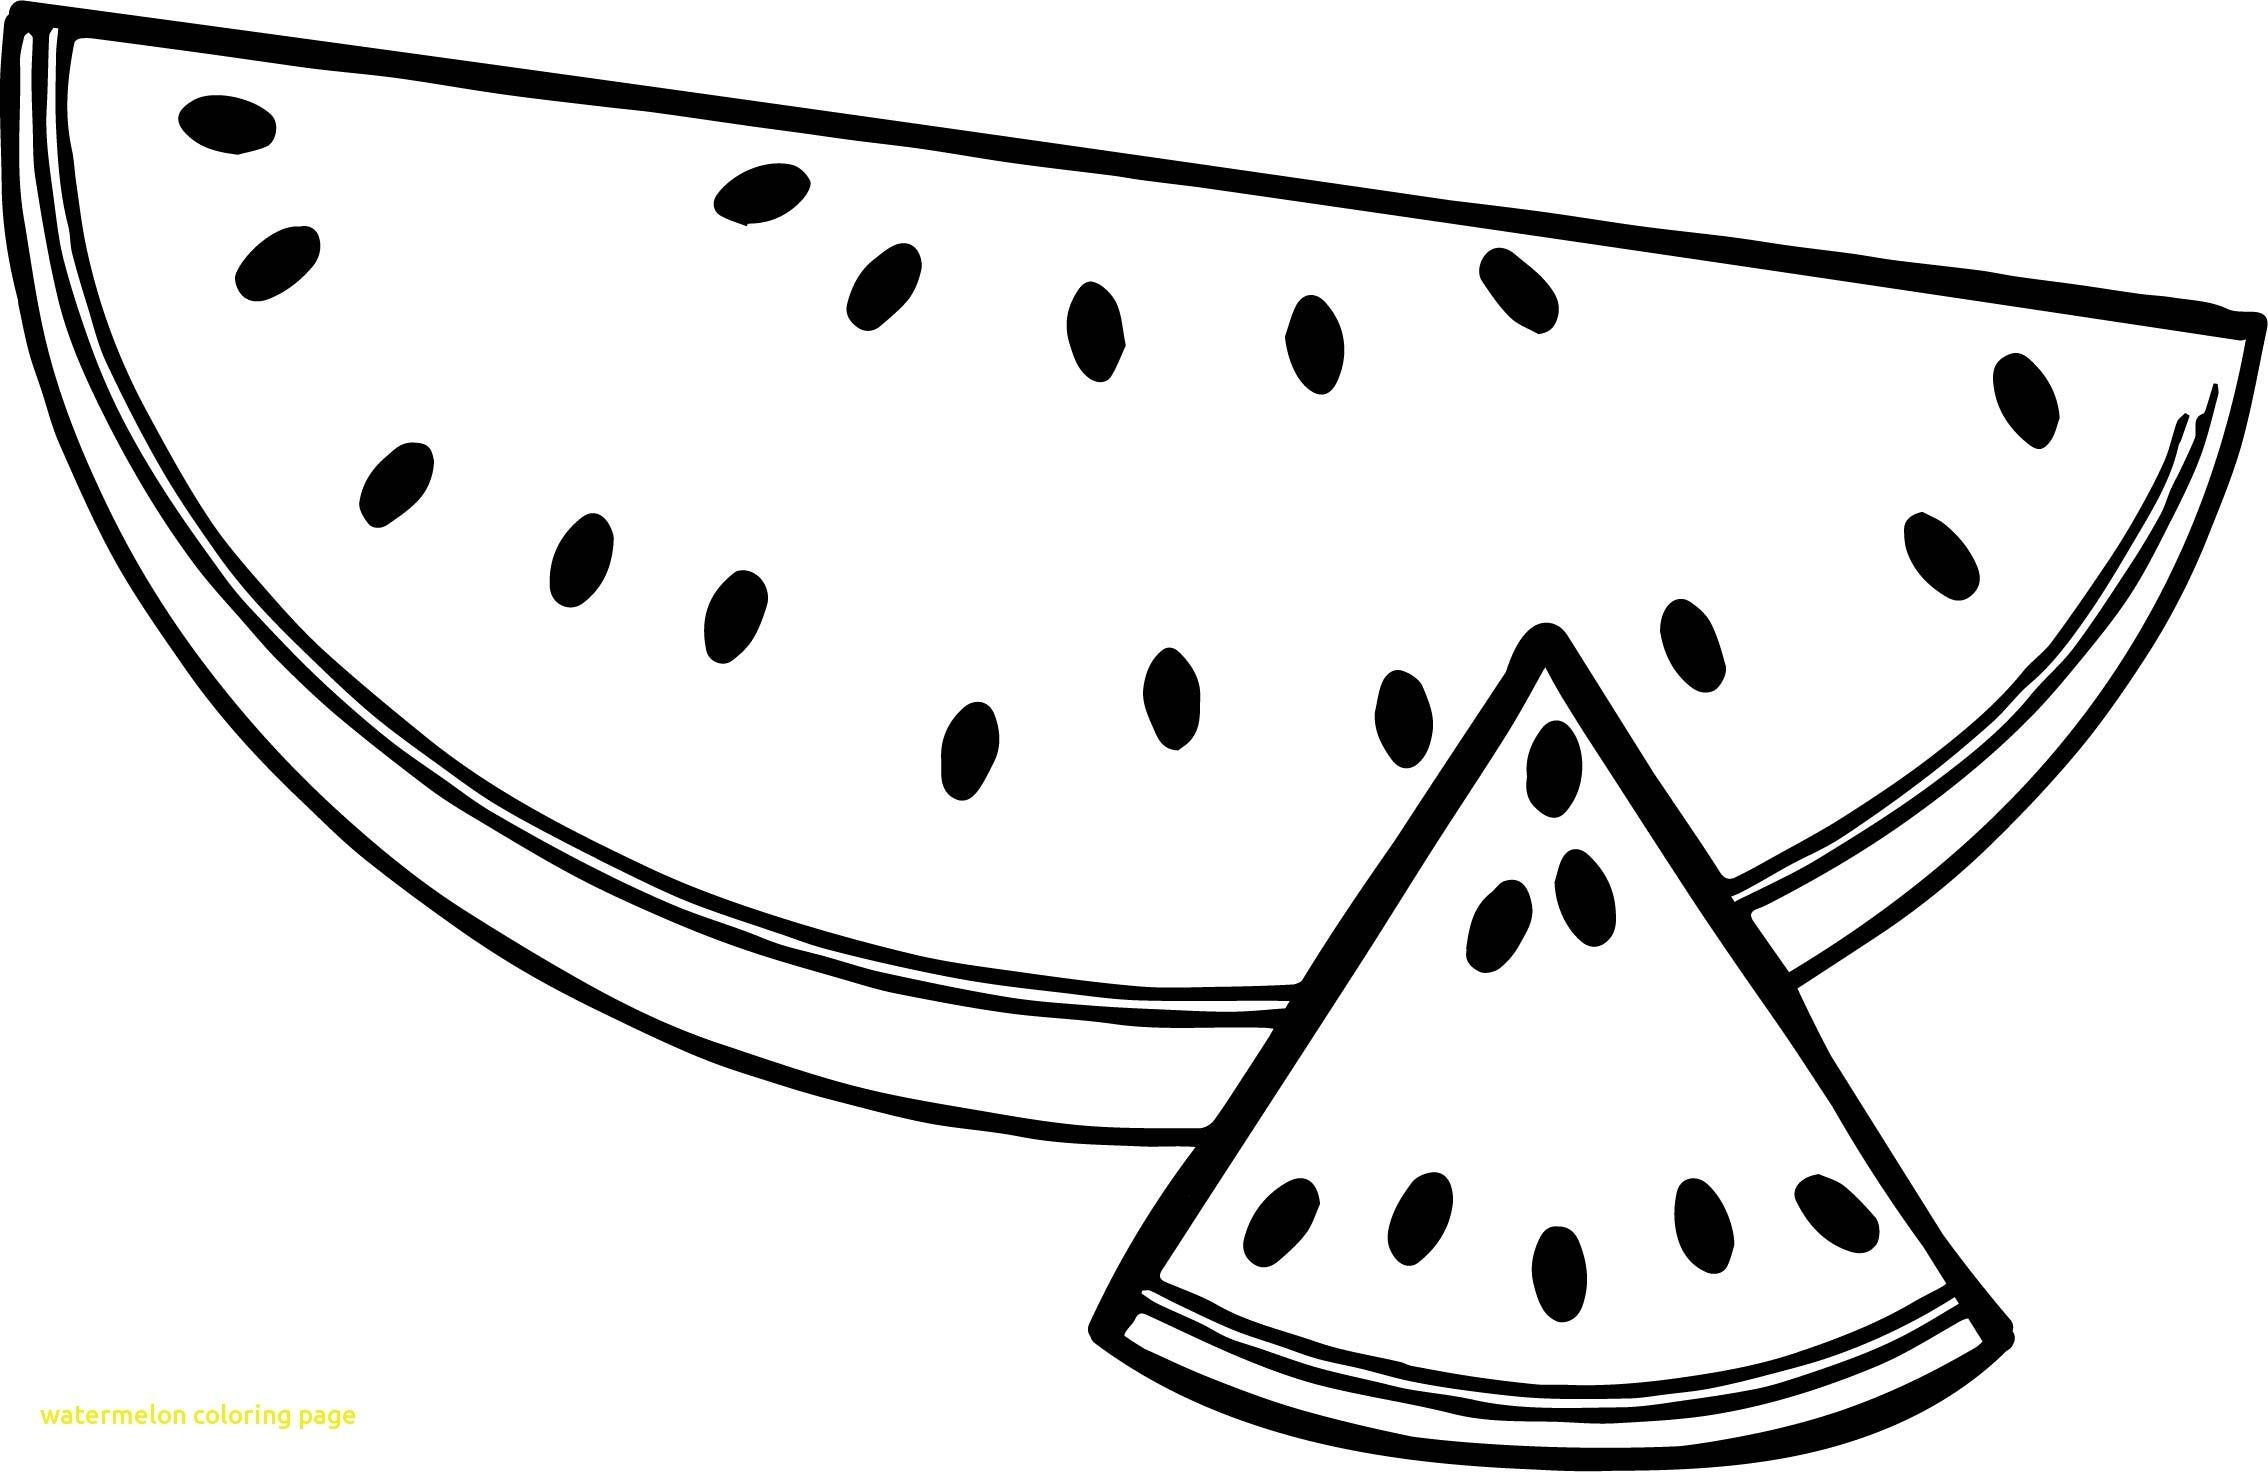 Watermelon clipart colour. Awesome watermelons coloring pages